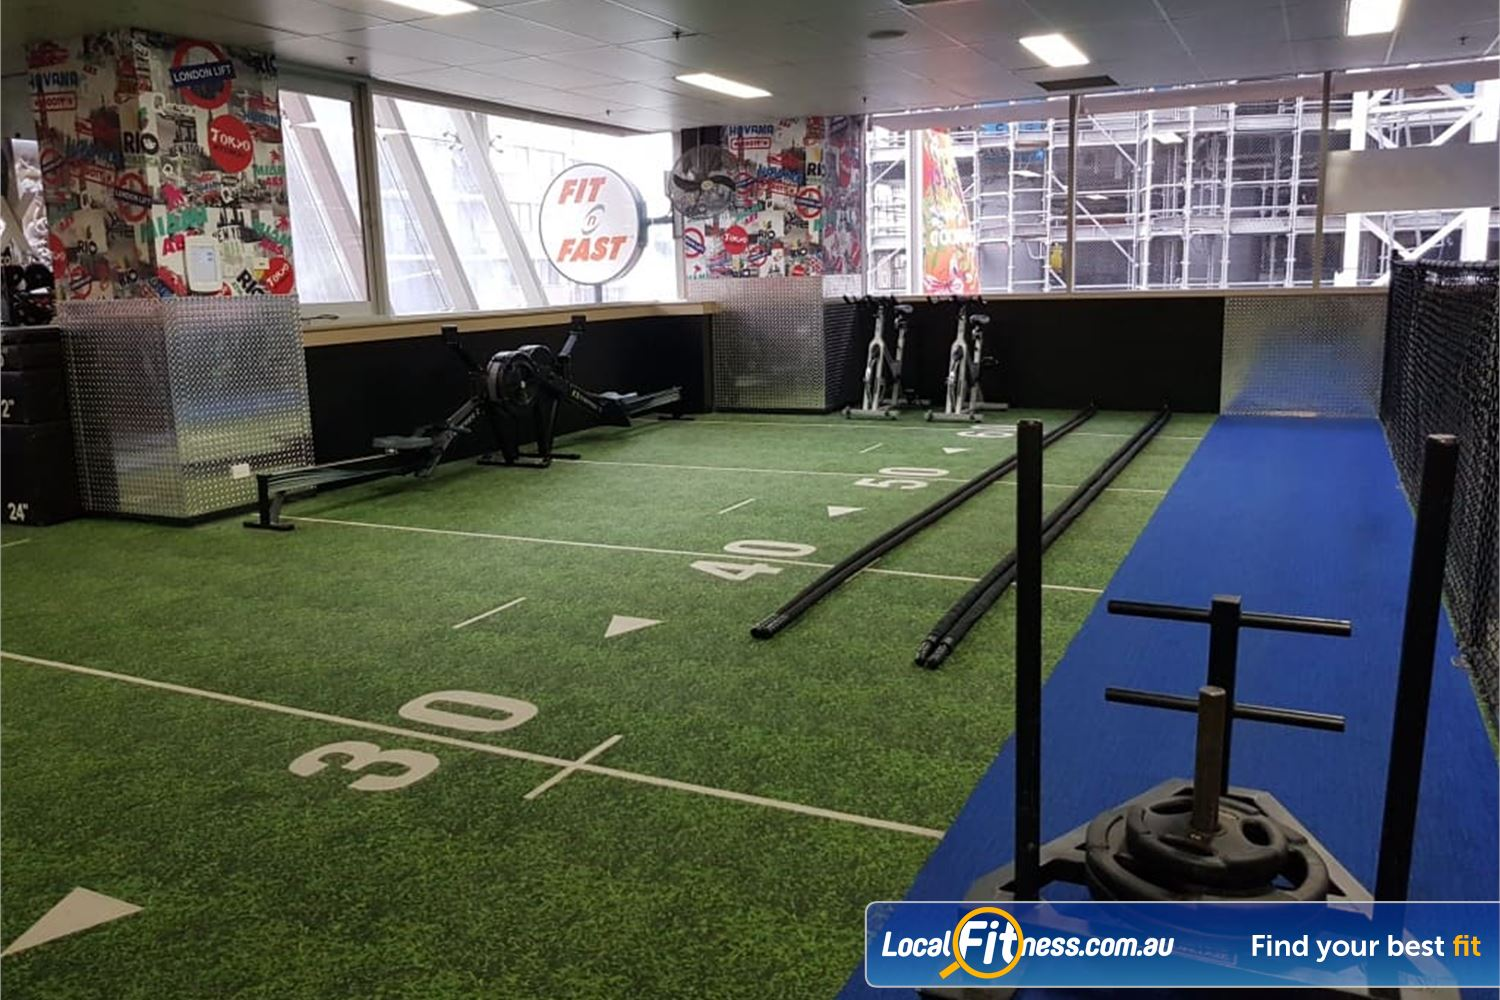 Fit n Fast Burwood Welcome to our NSW HIIT, Yoga and Burwood Gym at FNF Burwood.